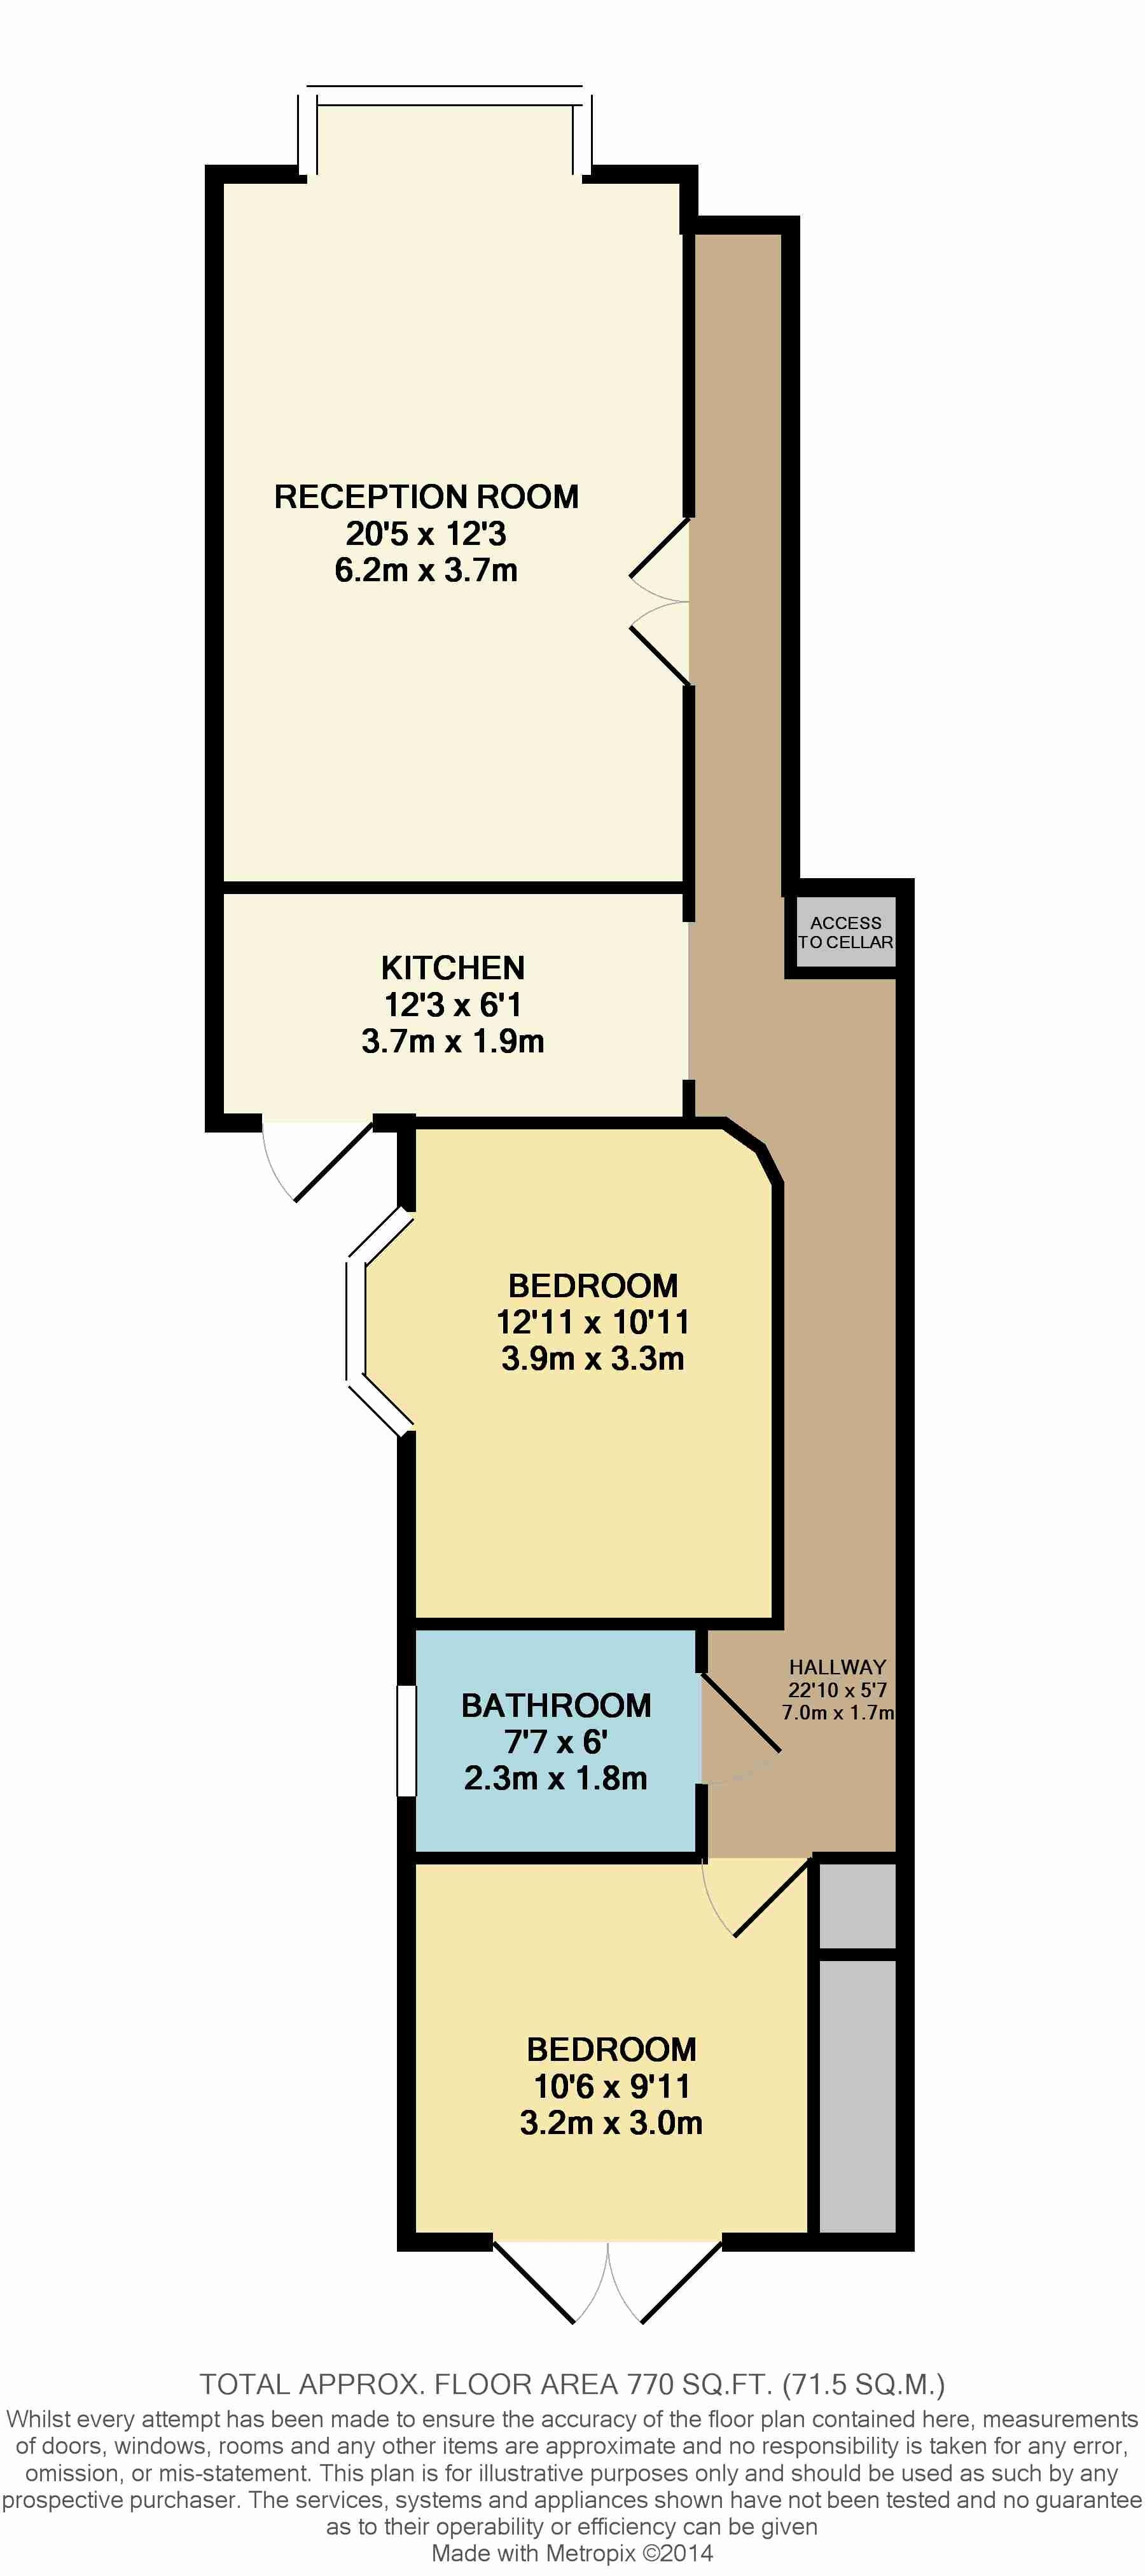 Ground Floor Two Bedroom Victorian Flat Floor Plan Google Search Floor Plans Reception Rooms Flooring